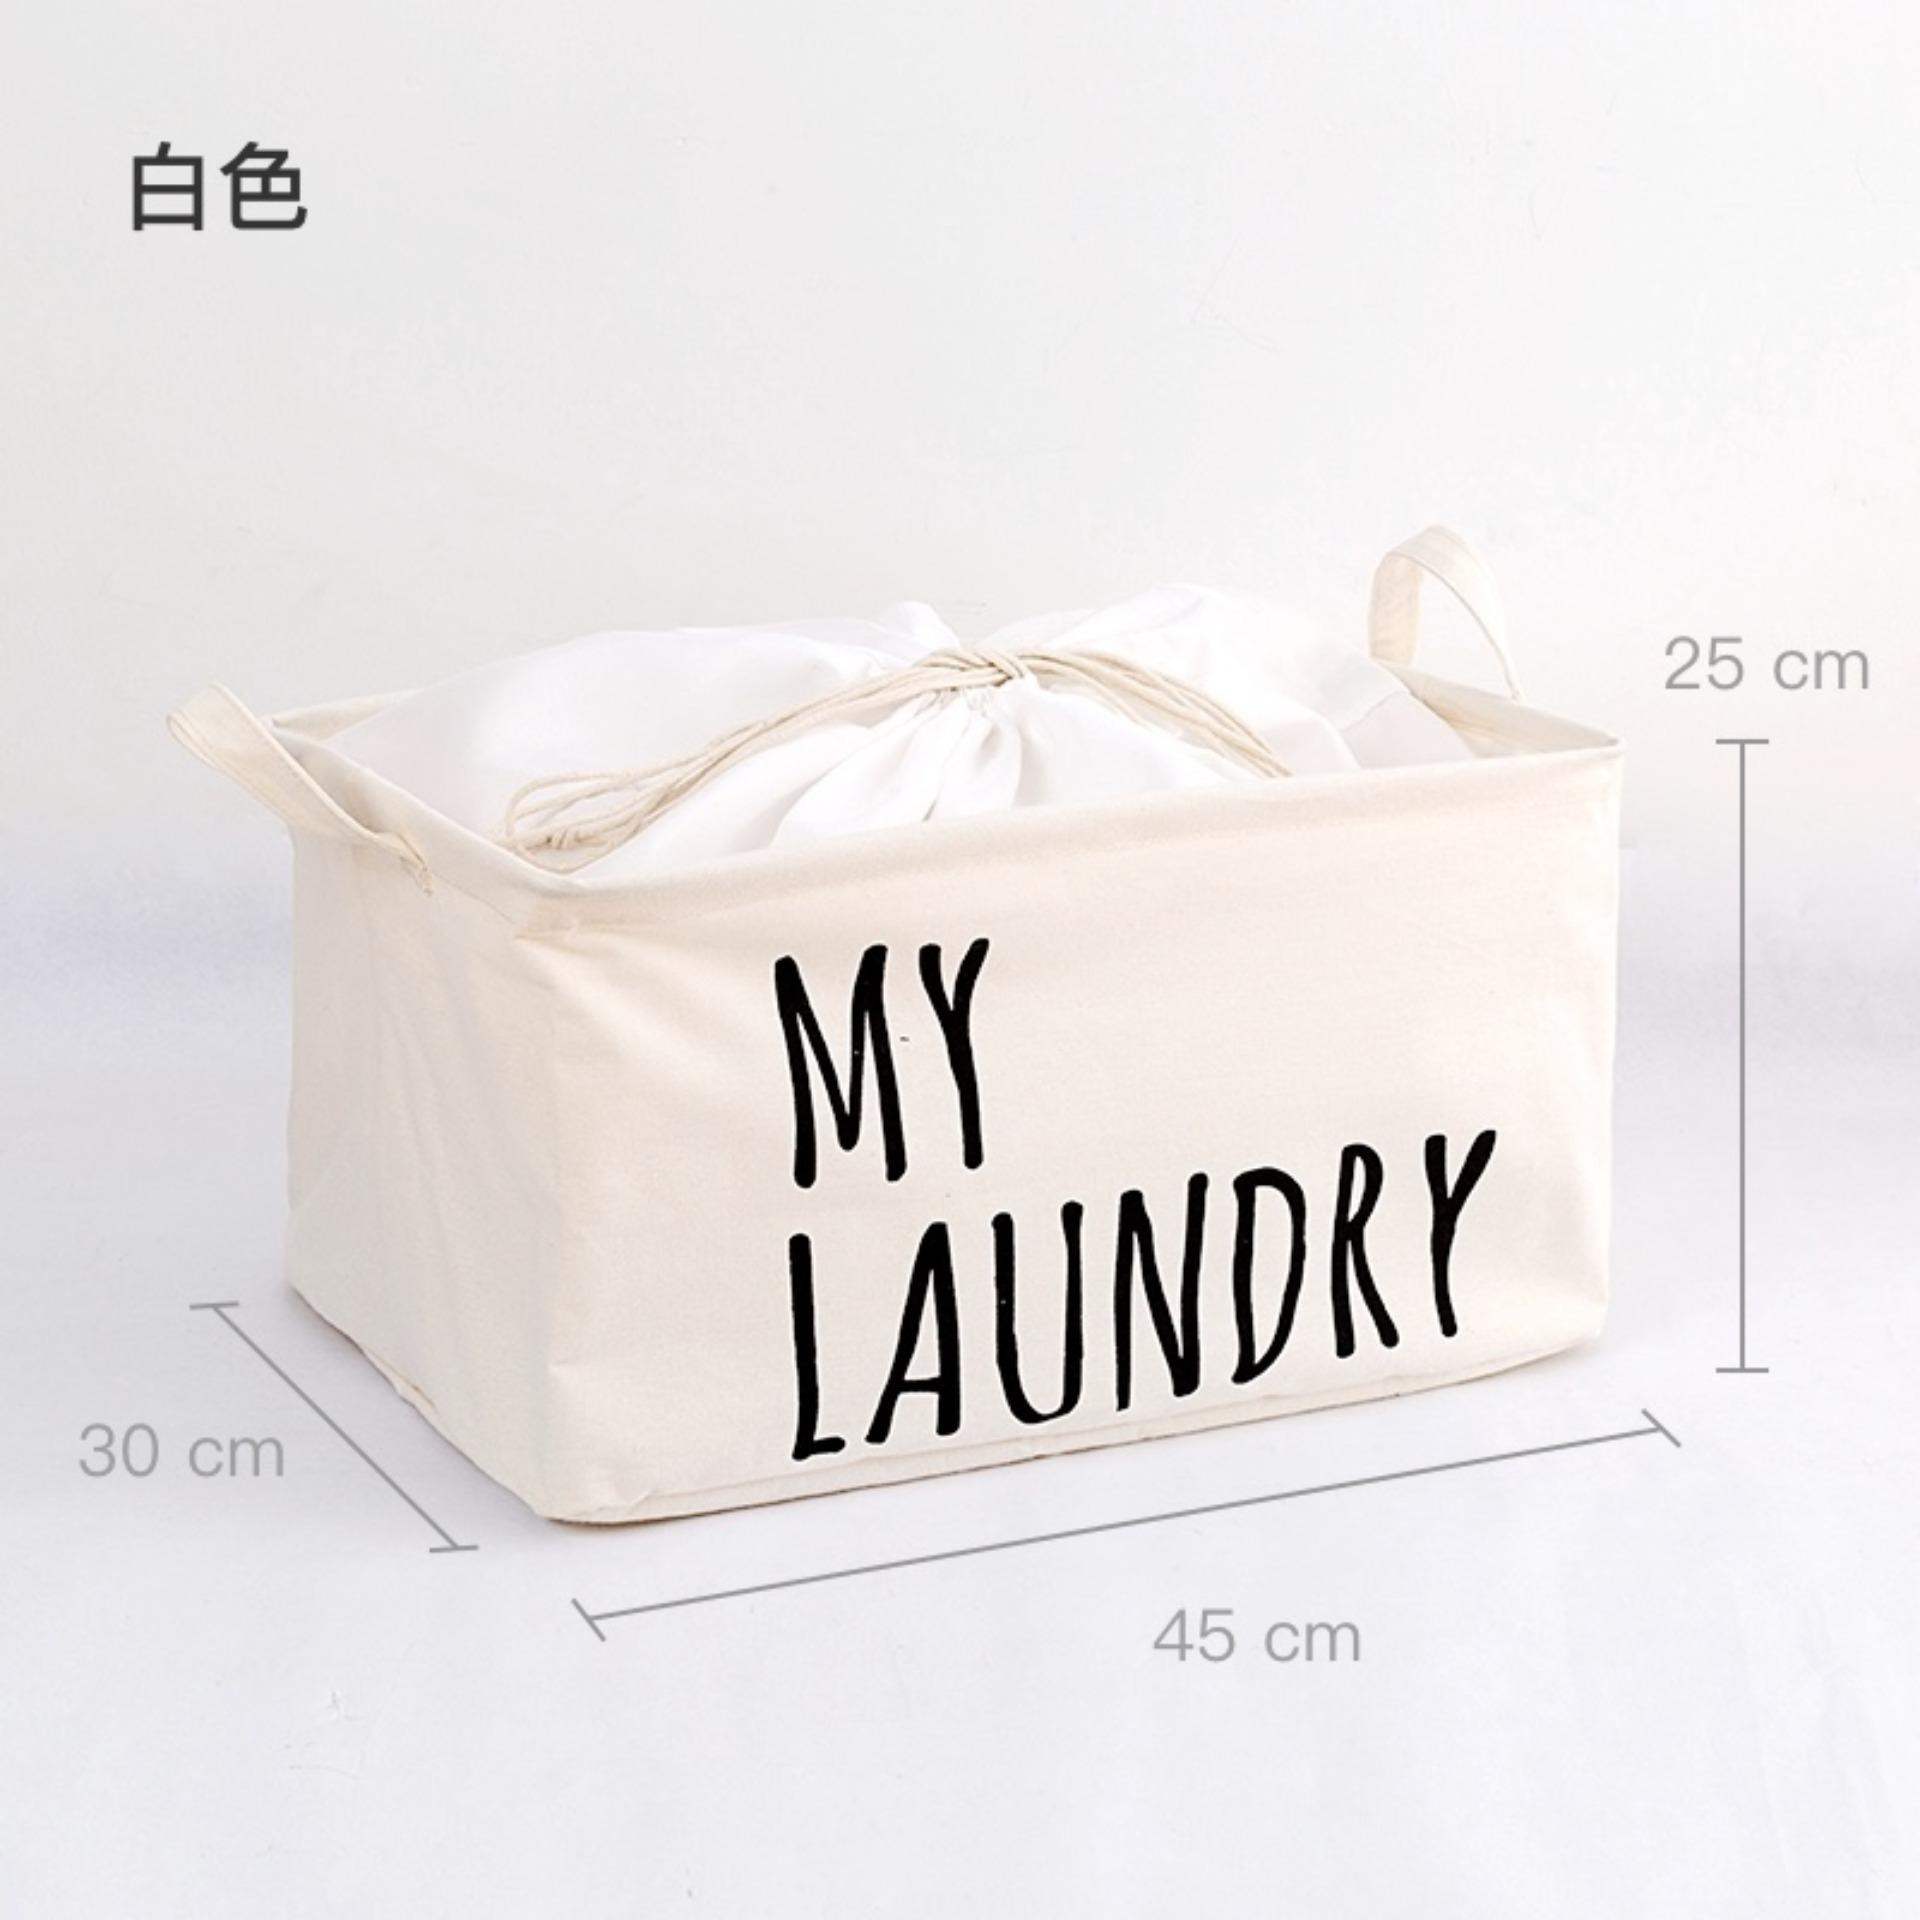 Review Mimosifolia Outdoor Garden Picnic Baskets Bathroom Folding Storage Bins With Cubes Archival Storage Boxes For Clothes Toy Boxes Laundry Basket Shelf Baskets White Intl China